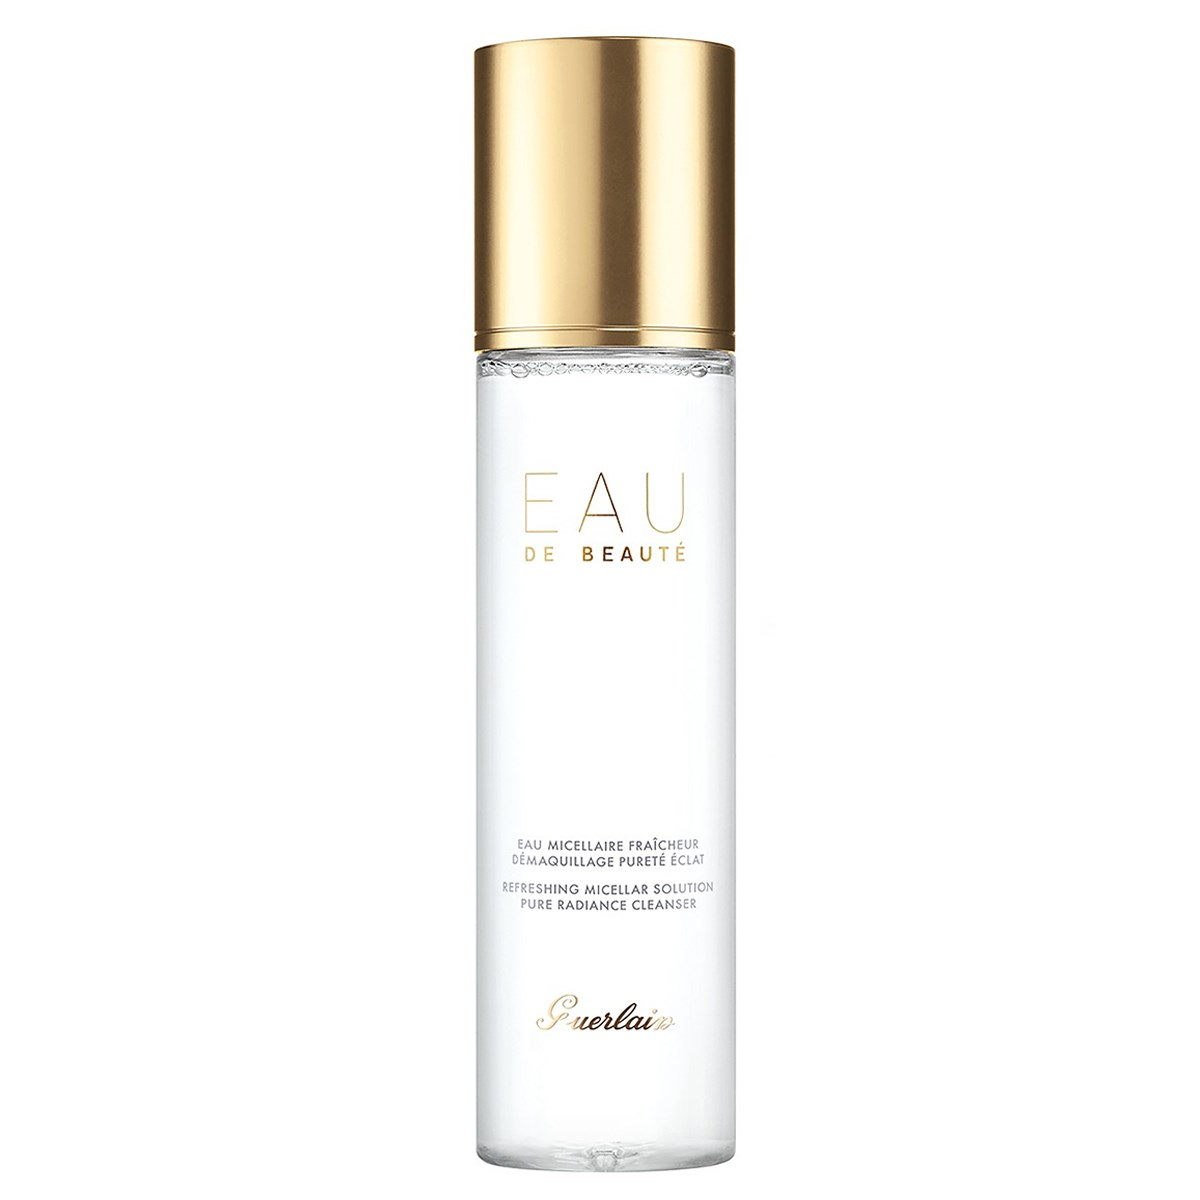 Guerlain Eau de Beauté Refreshing Micellar Solution